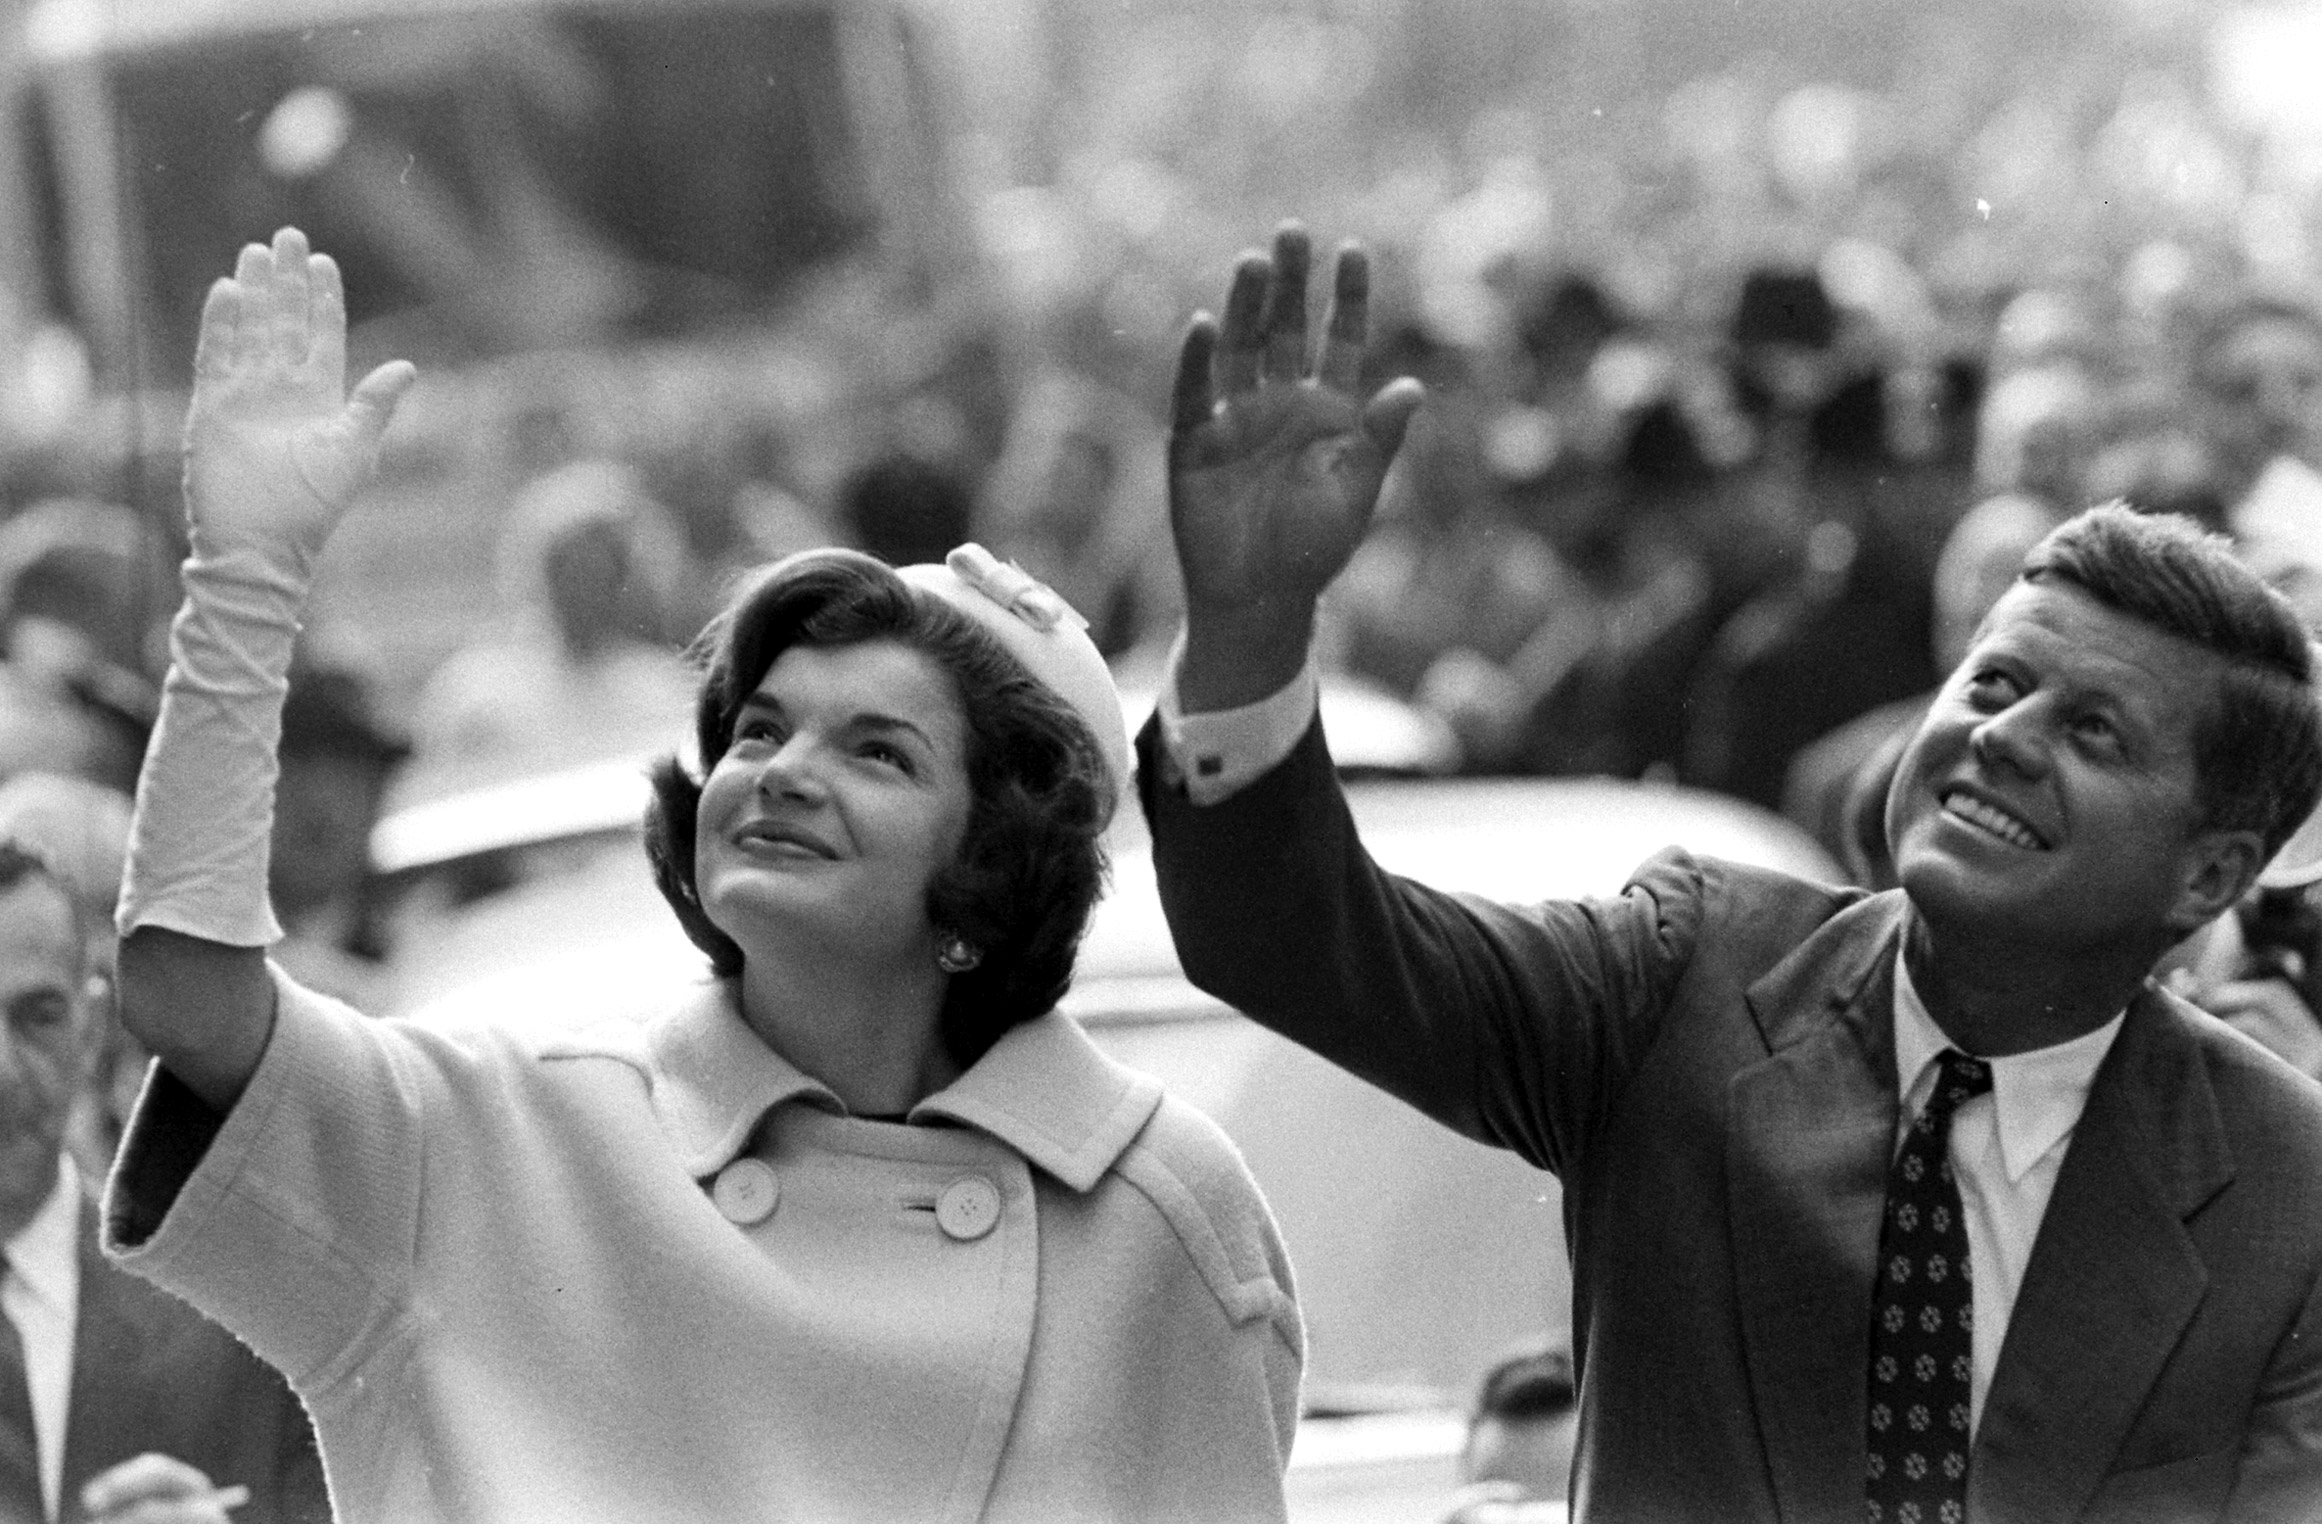 Find a mate and a pillbox hat to go as one of history's most famous couples, First Lady Jackie Kennedy and President John F. Kennedy, pictured on the campaign trail in 1960.